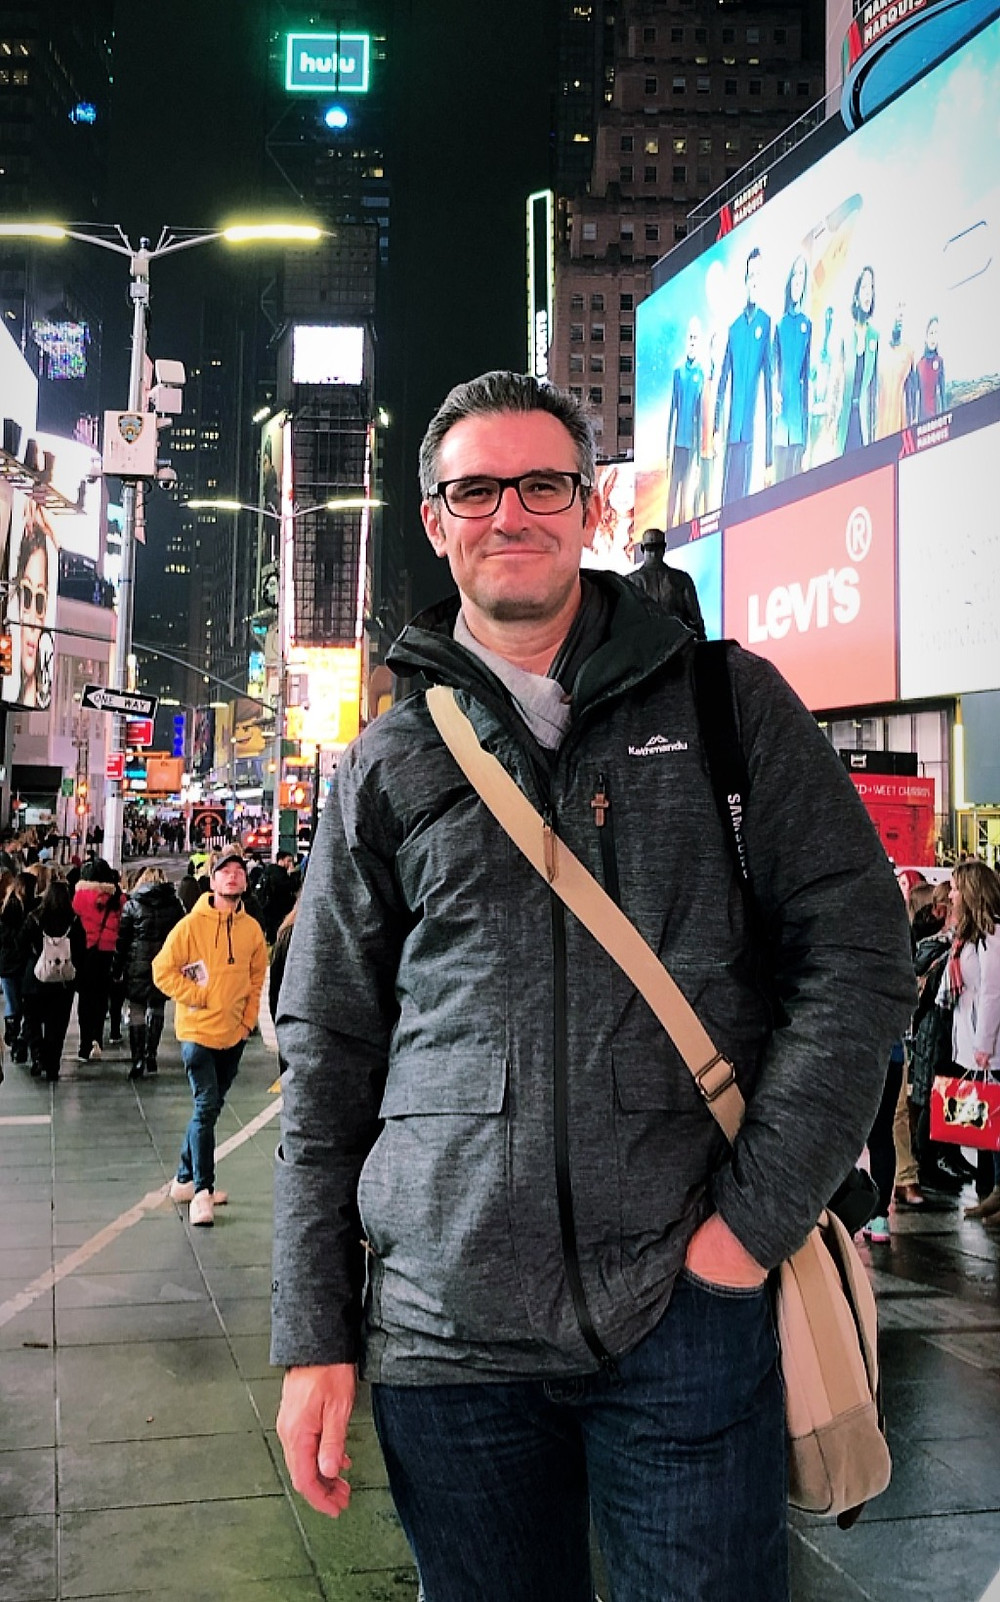 Chris McKeown, Times Square, New York city